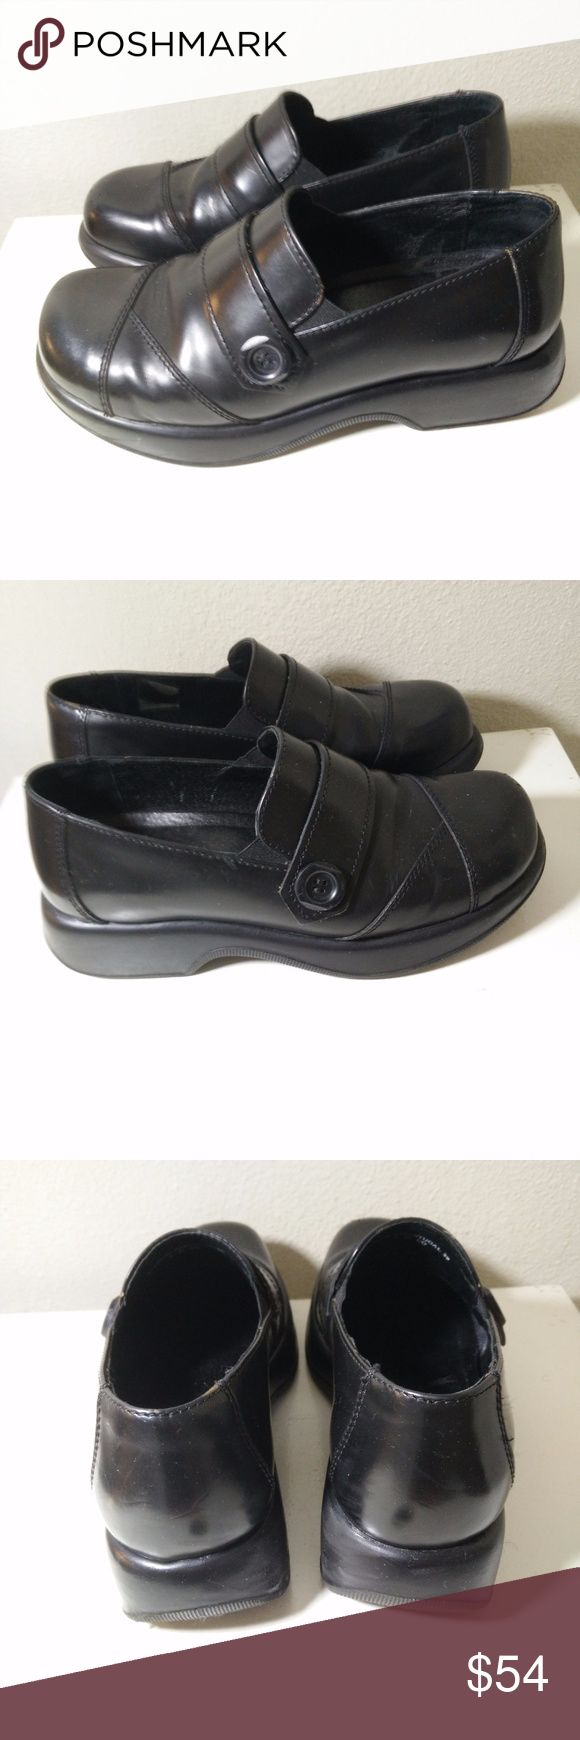 DANSKO  PROFESSIONAL CLOGS SHOES SZ 39 BLACK DANSKO WOMENS PROFESSIONAL CLOGS SHOES SZ 39 BLACK WITH SIDE BUTTON DESIGN - Very nice looking shoes - showing the odd stratch/scuff mark in places but still in GOOD overall condition - see pictures for more details.  (REF#2103) Dansko Shoes Mules & Clogs